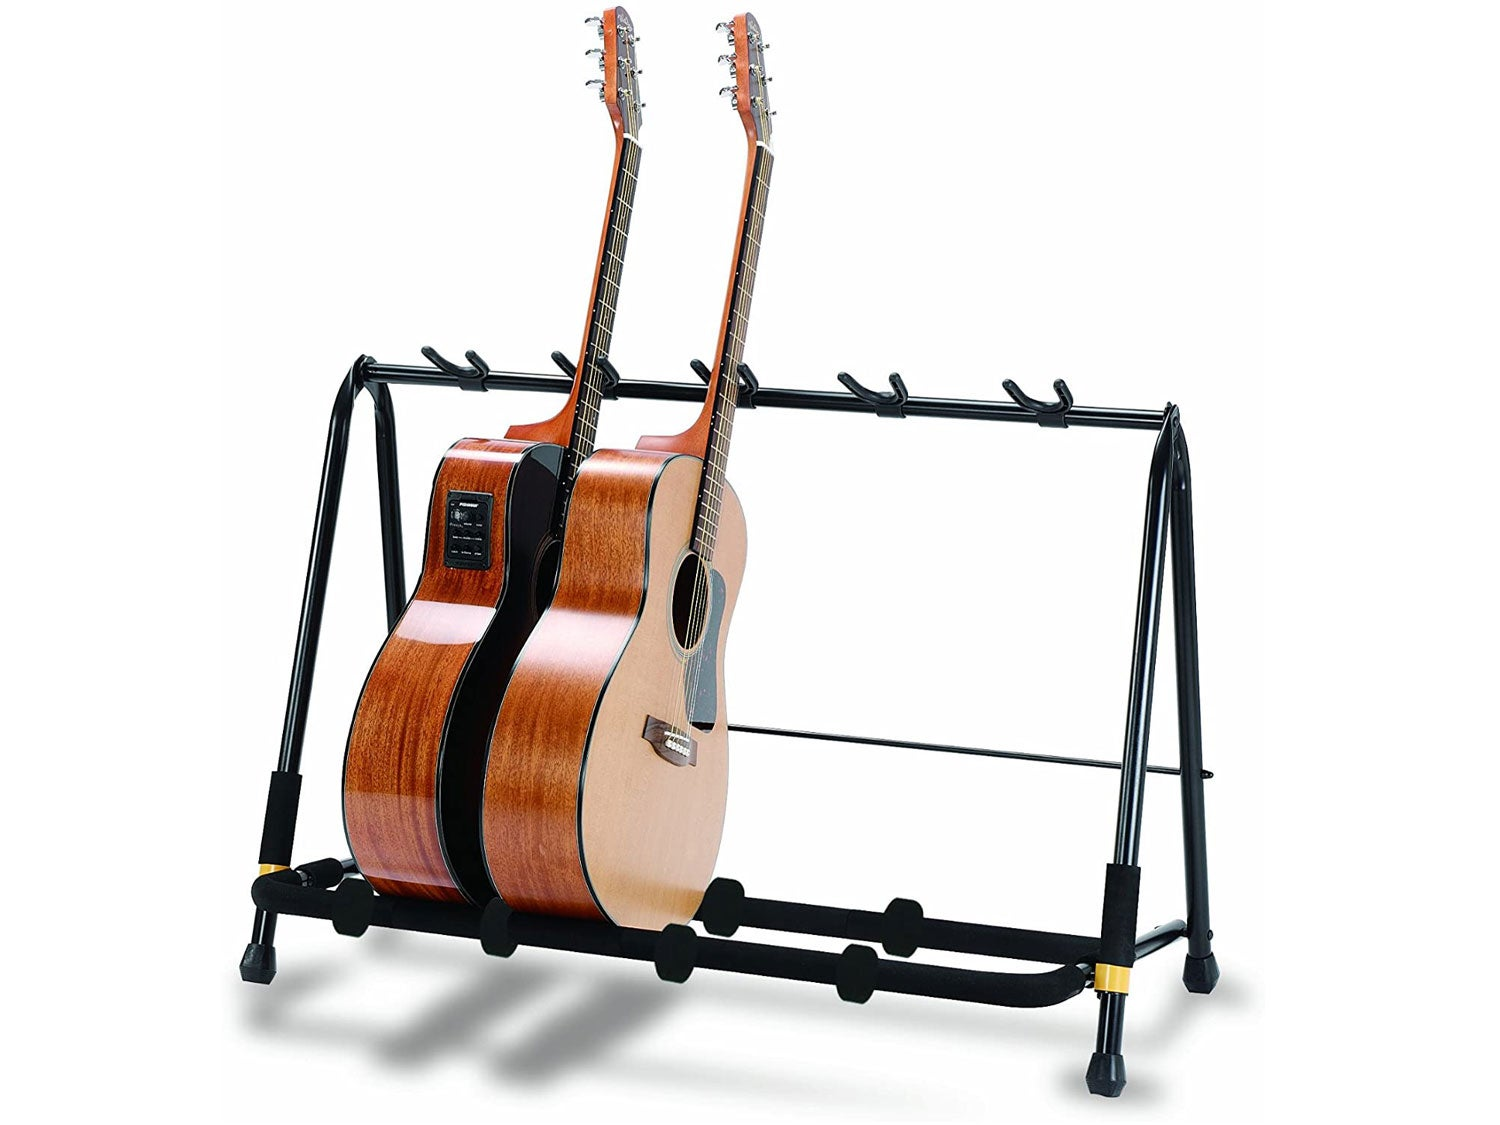 Two acoustic guitars on guitar rack